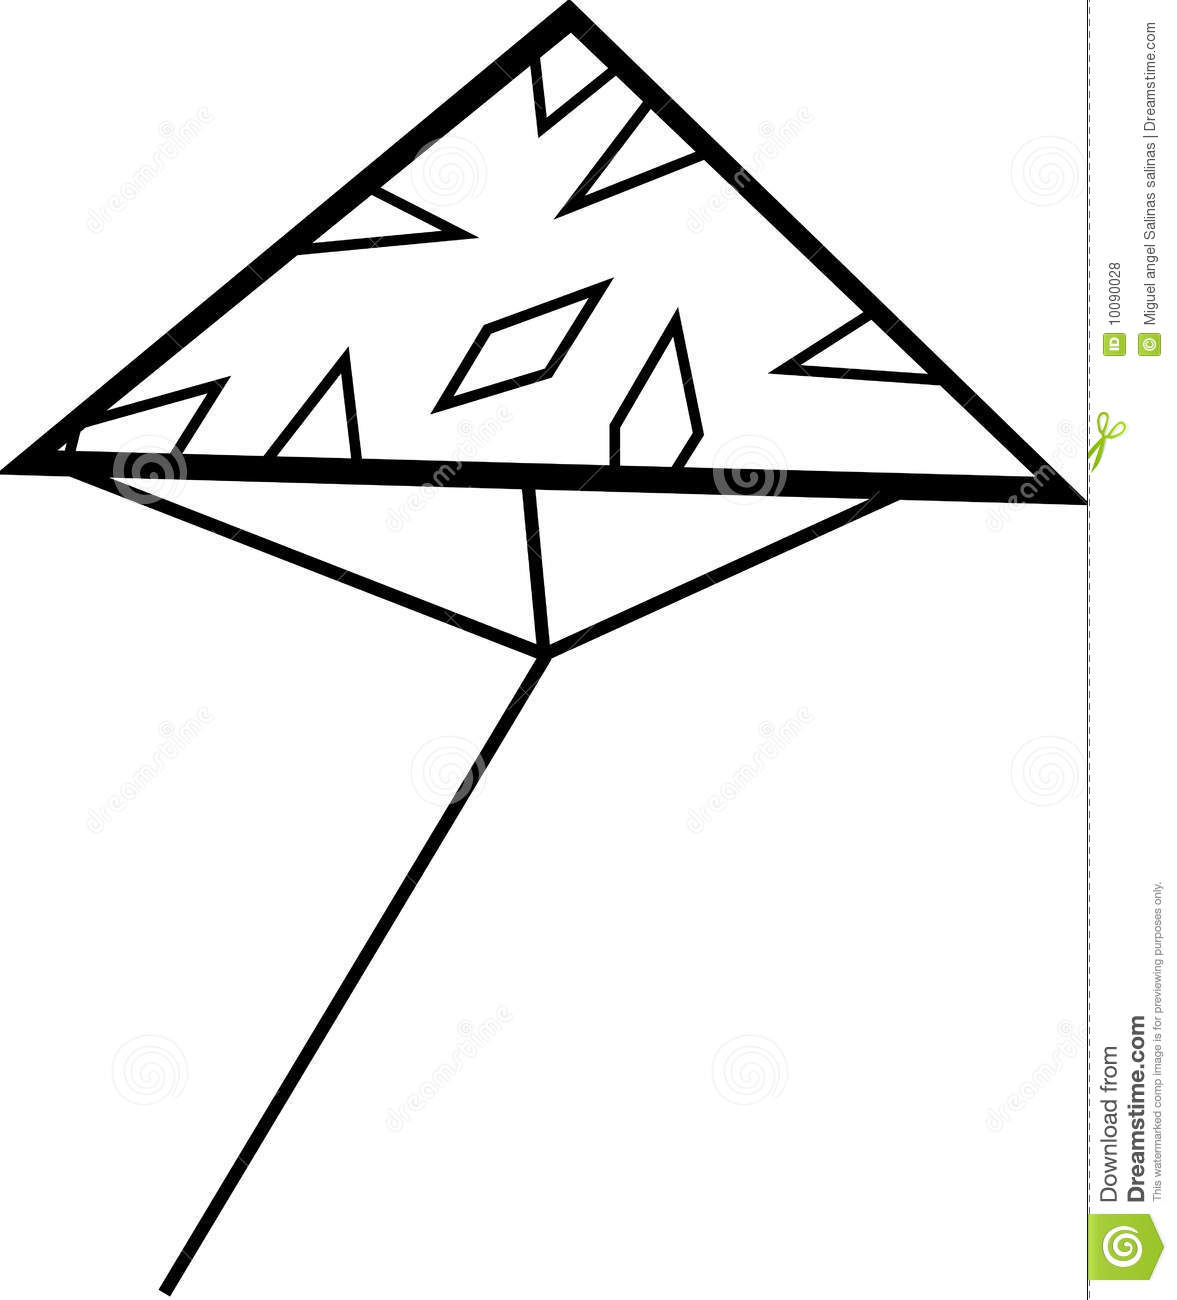 triangle objects clipart black and white 2 | Clipart Station for Triangle Objects Clipart Black And White  34eri